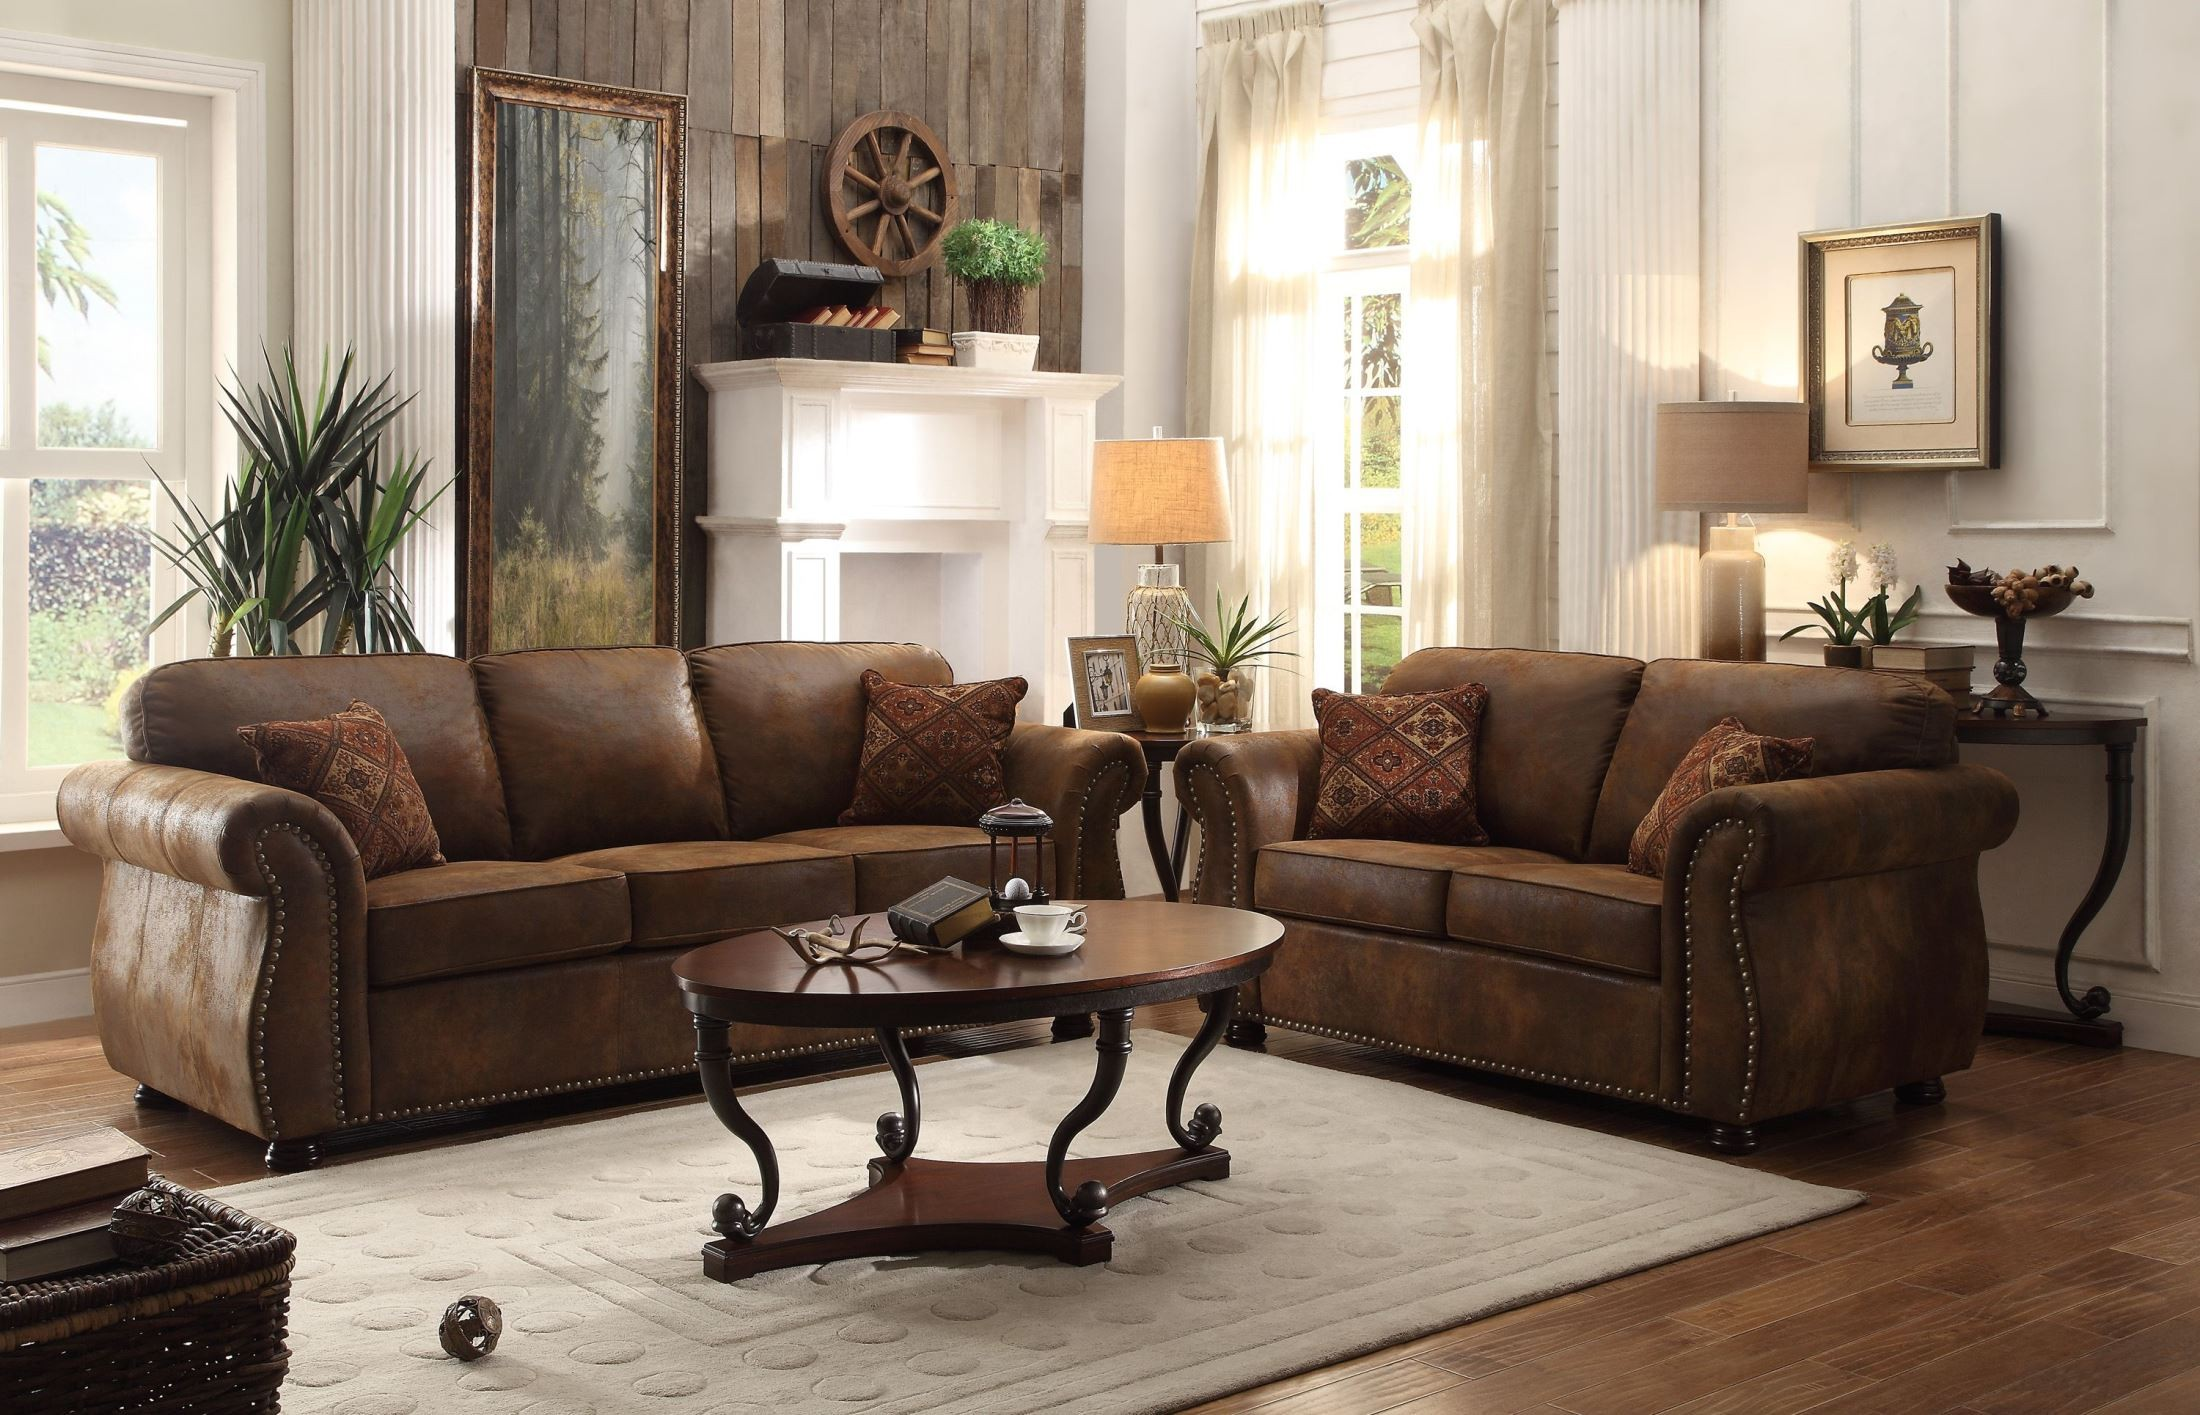 two sofa living room corvallis brown living room set from homelegance 8405bj 3 15380